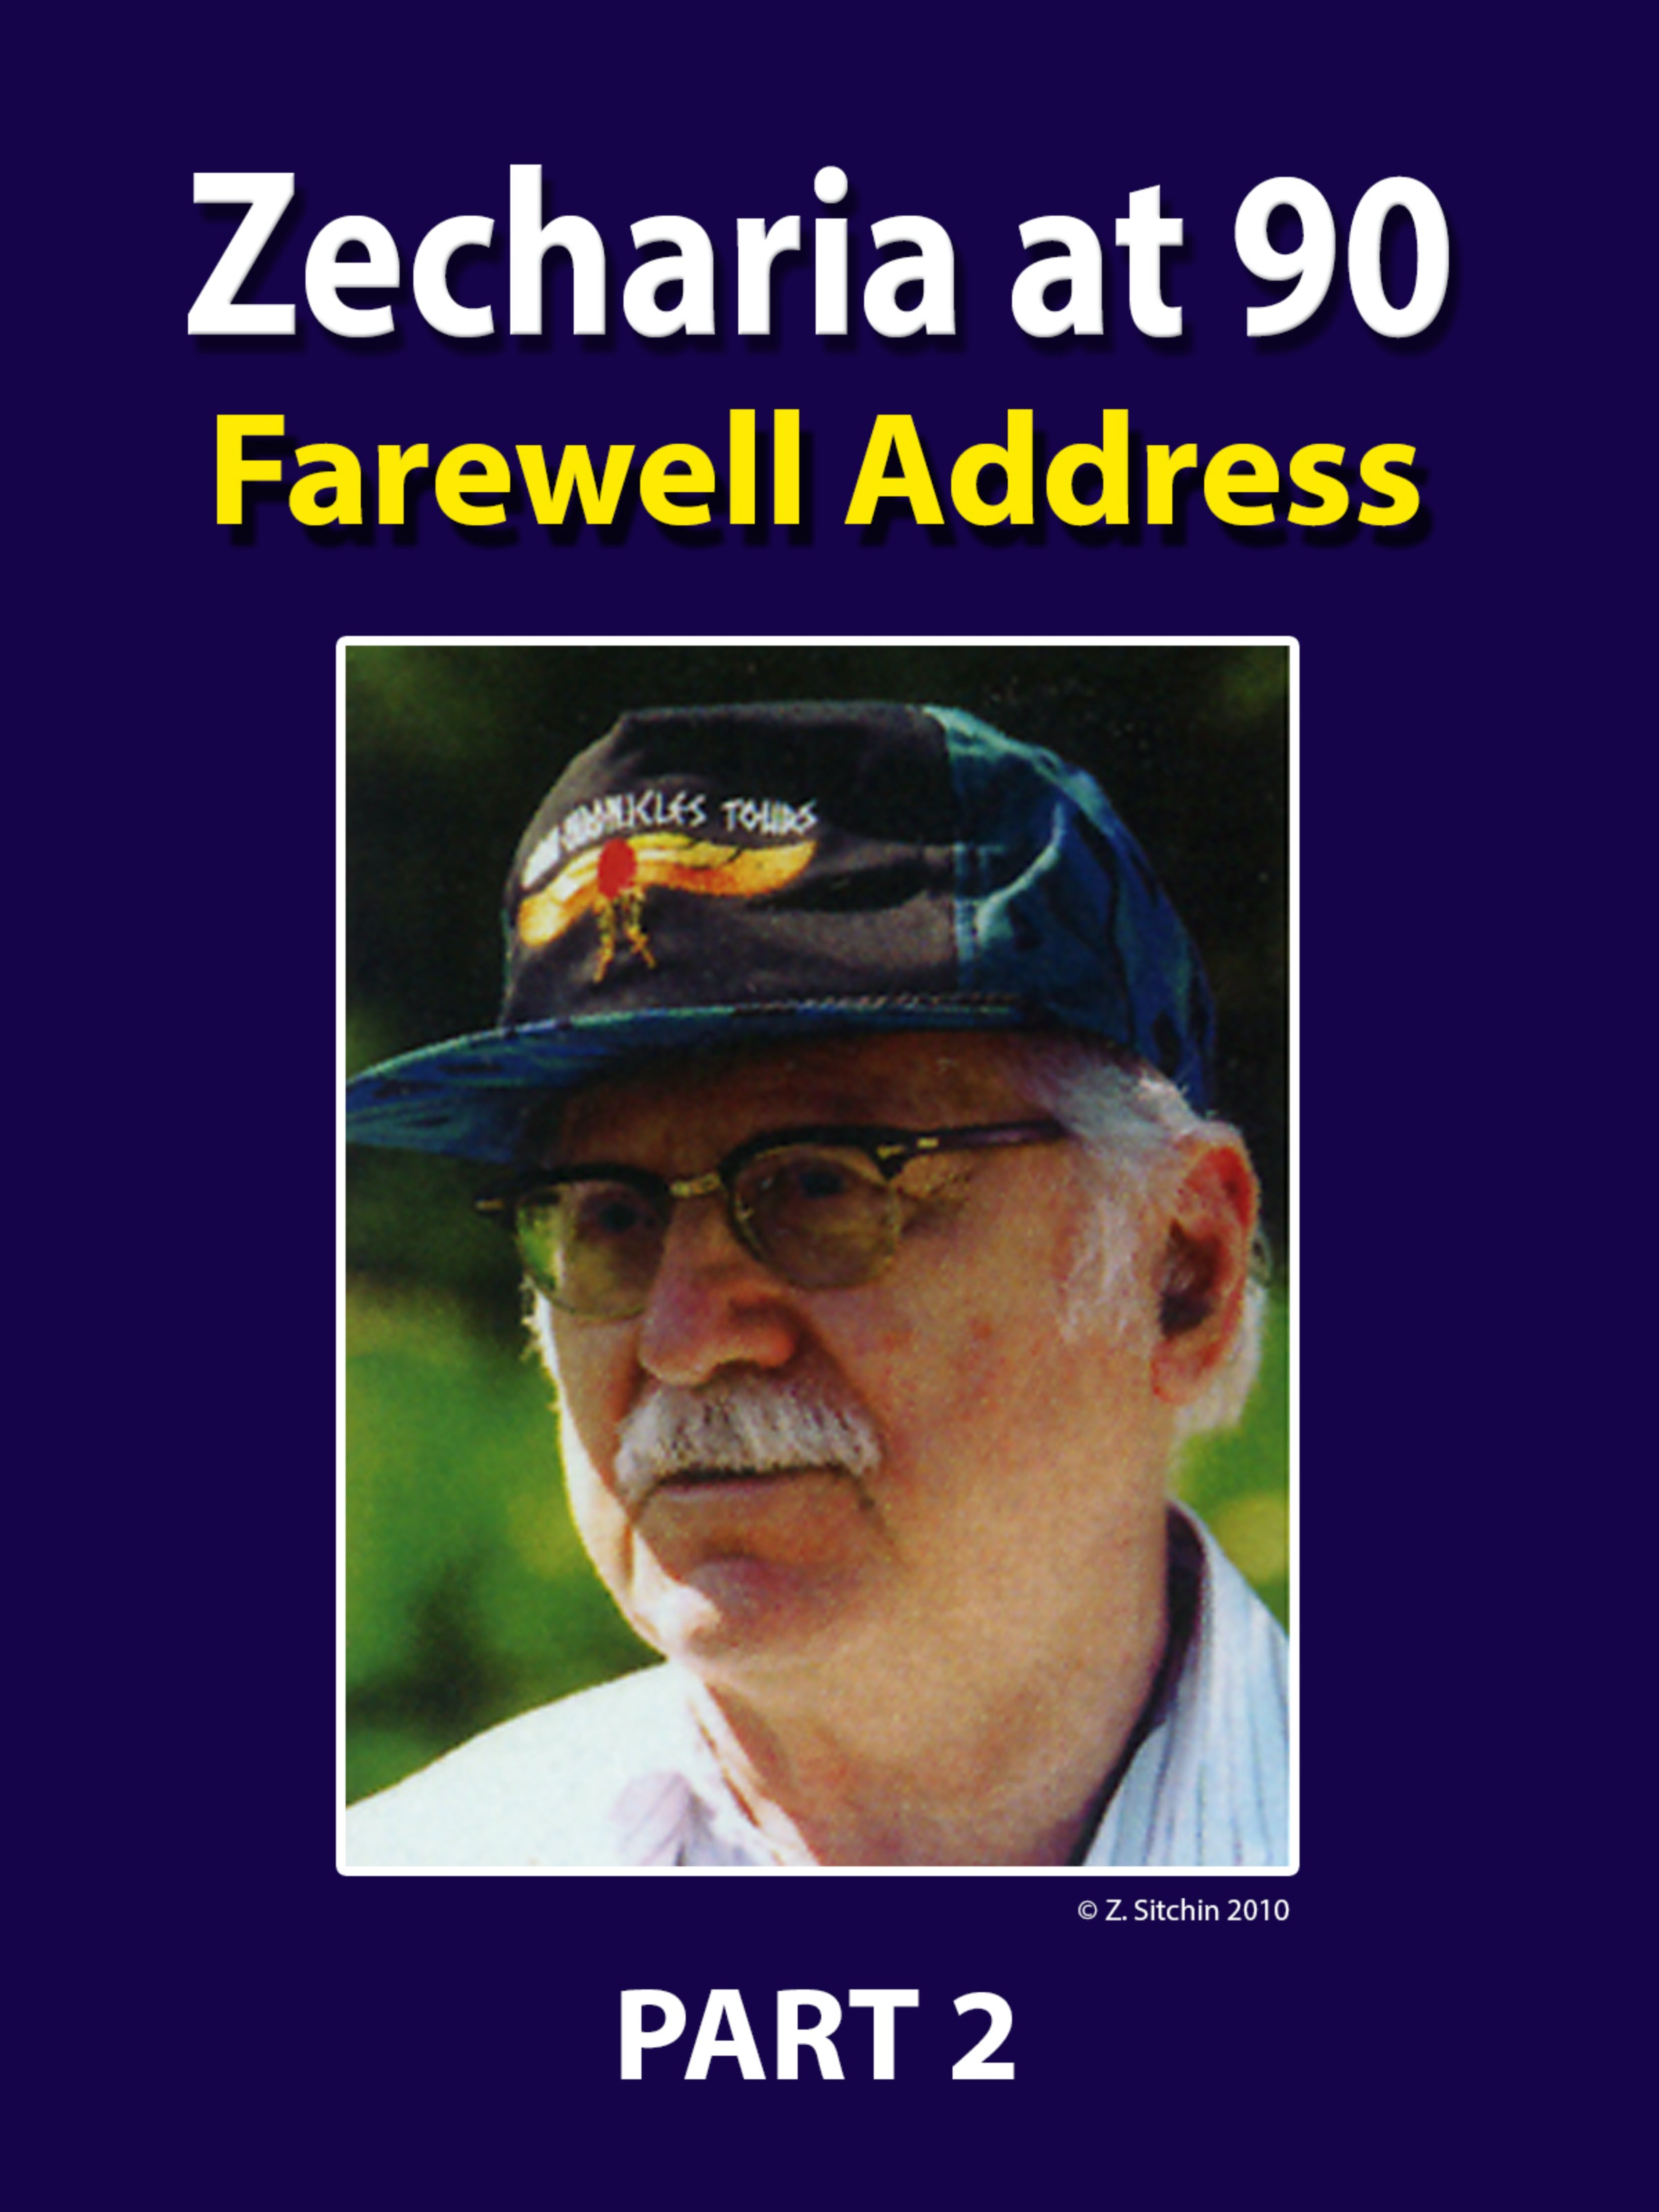 Zecharia at 90 -  Farewell Address - Part 2